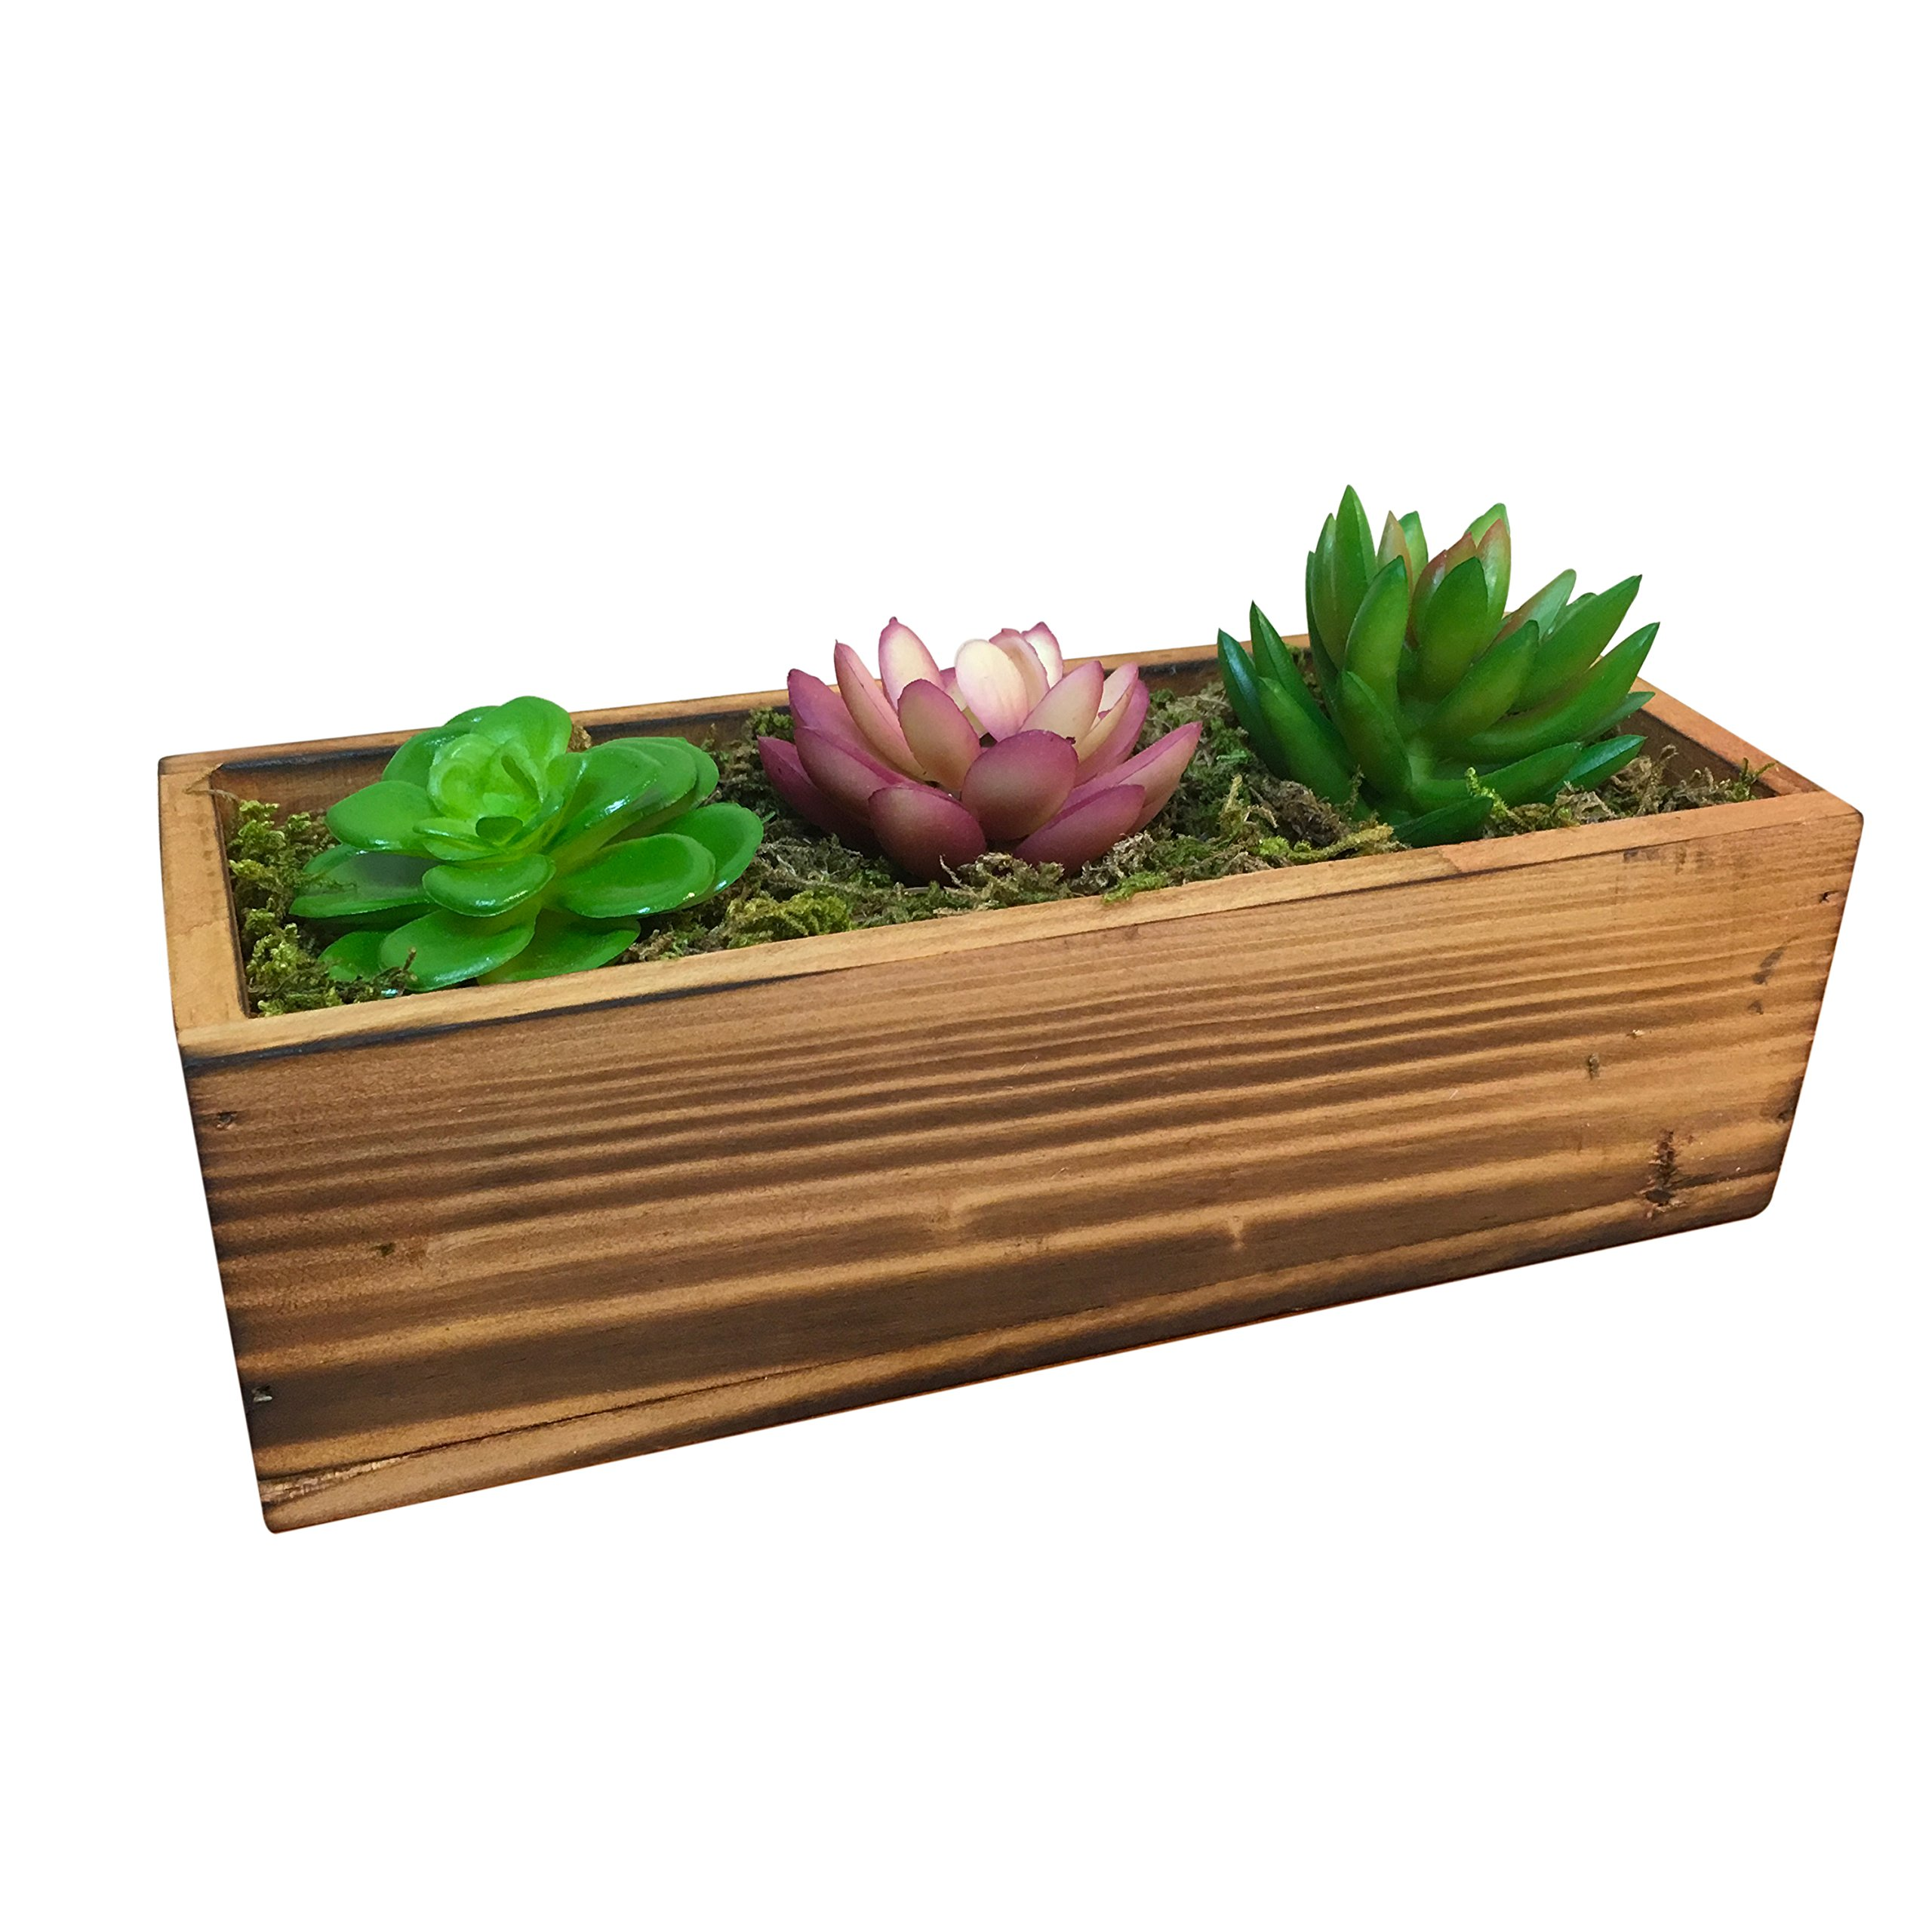 Country Rustic Wood Planter w/ 3 Faux Succulent Plants & Moss / Decorative Windowsill Plant Container Box